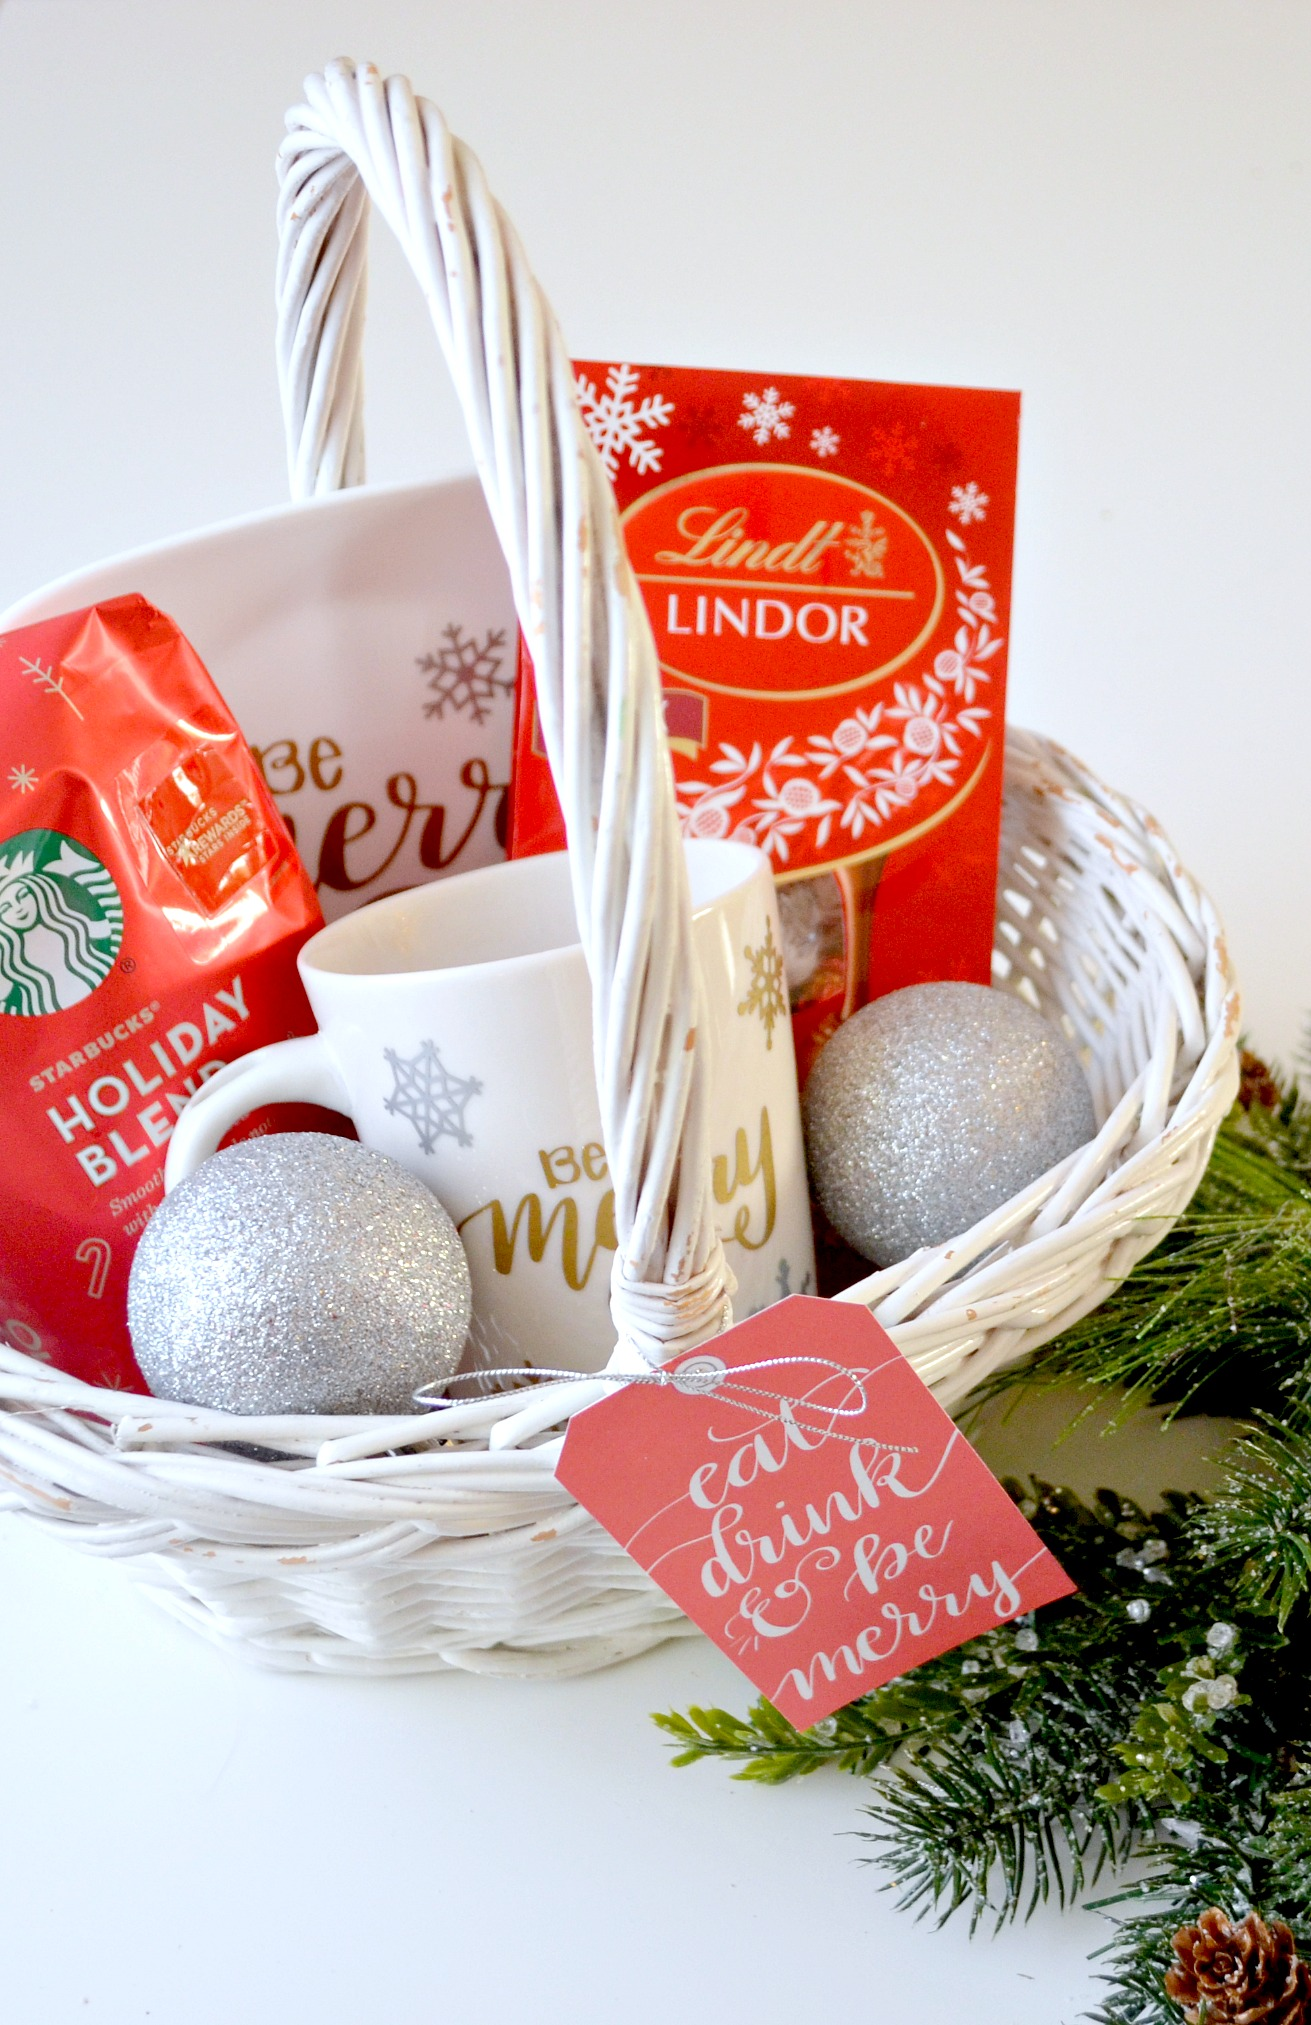 Starbucks and Lindt Coffee & Chocolate Christmas Gift Basket